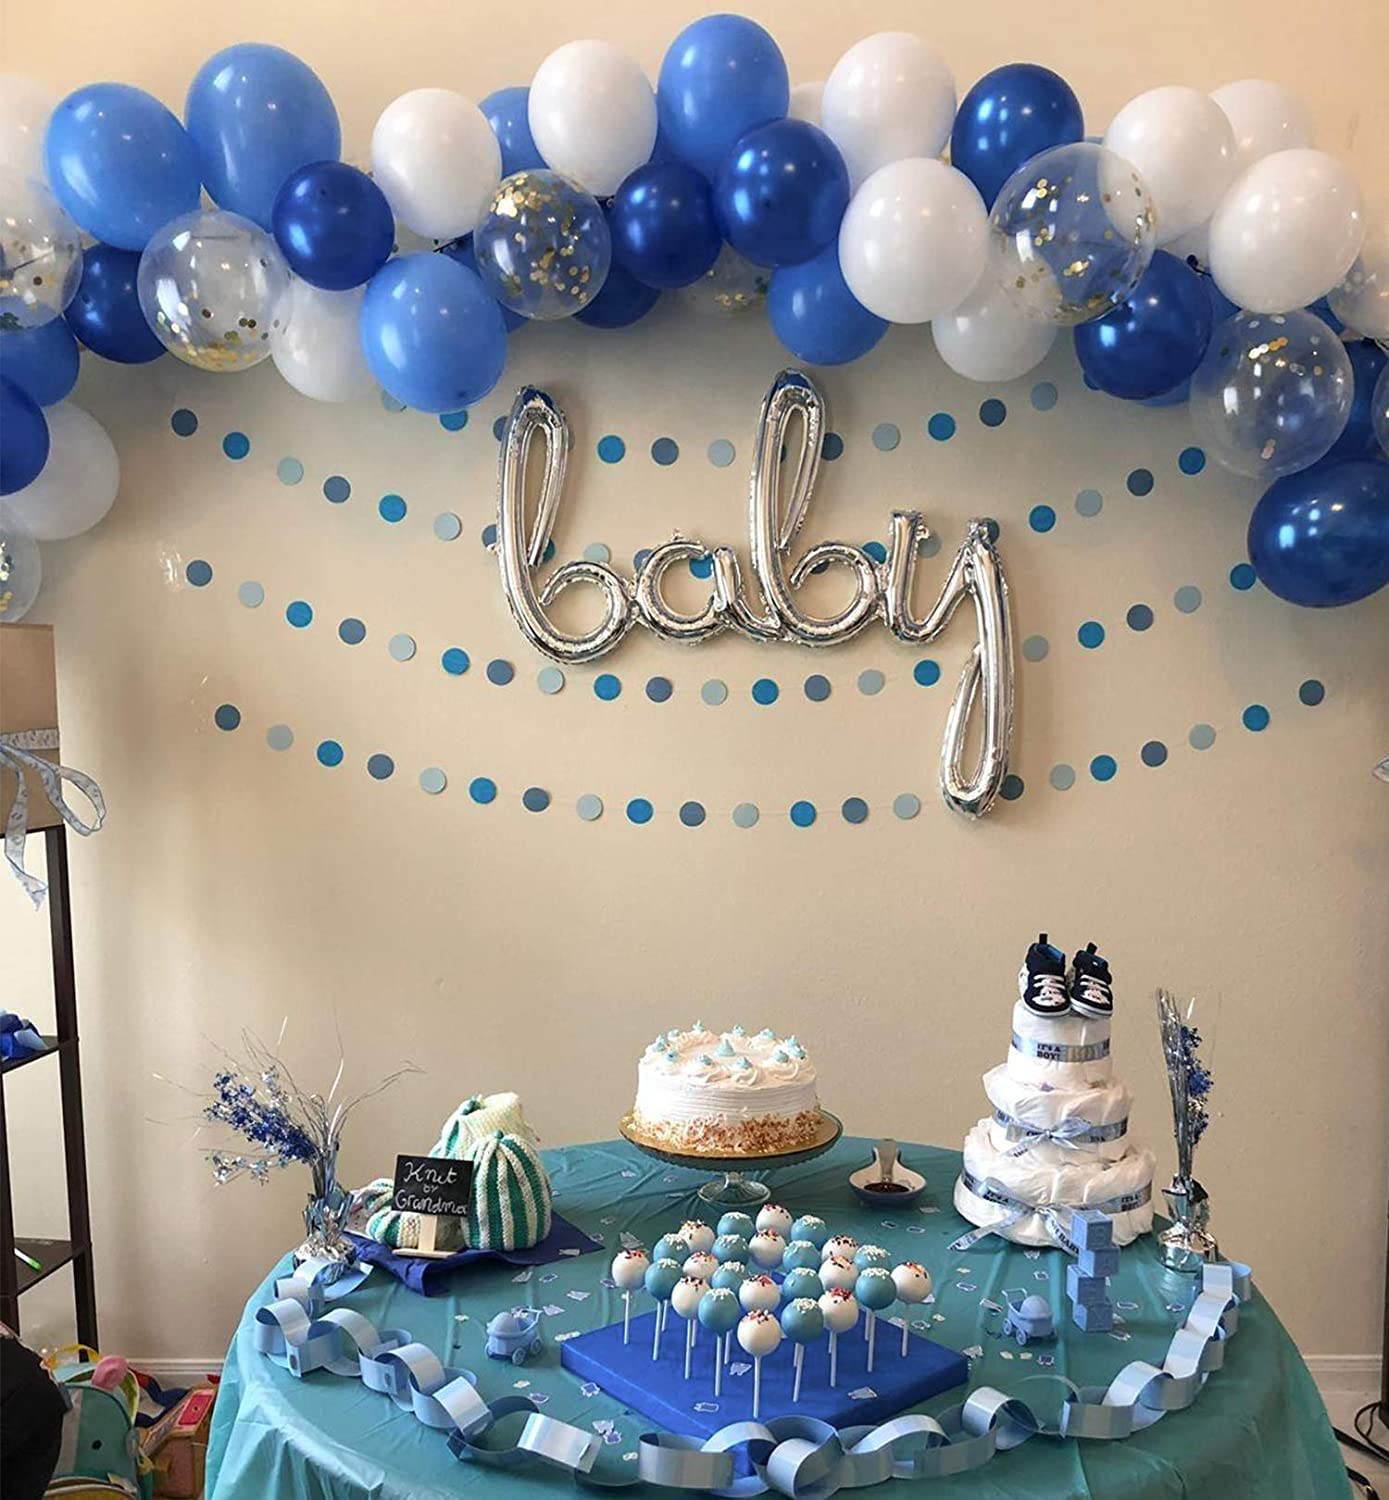 Royal Blue And Gold Party Decorations from images-na.ssl-images-amazon.com